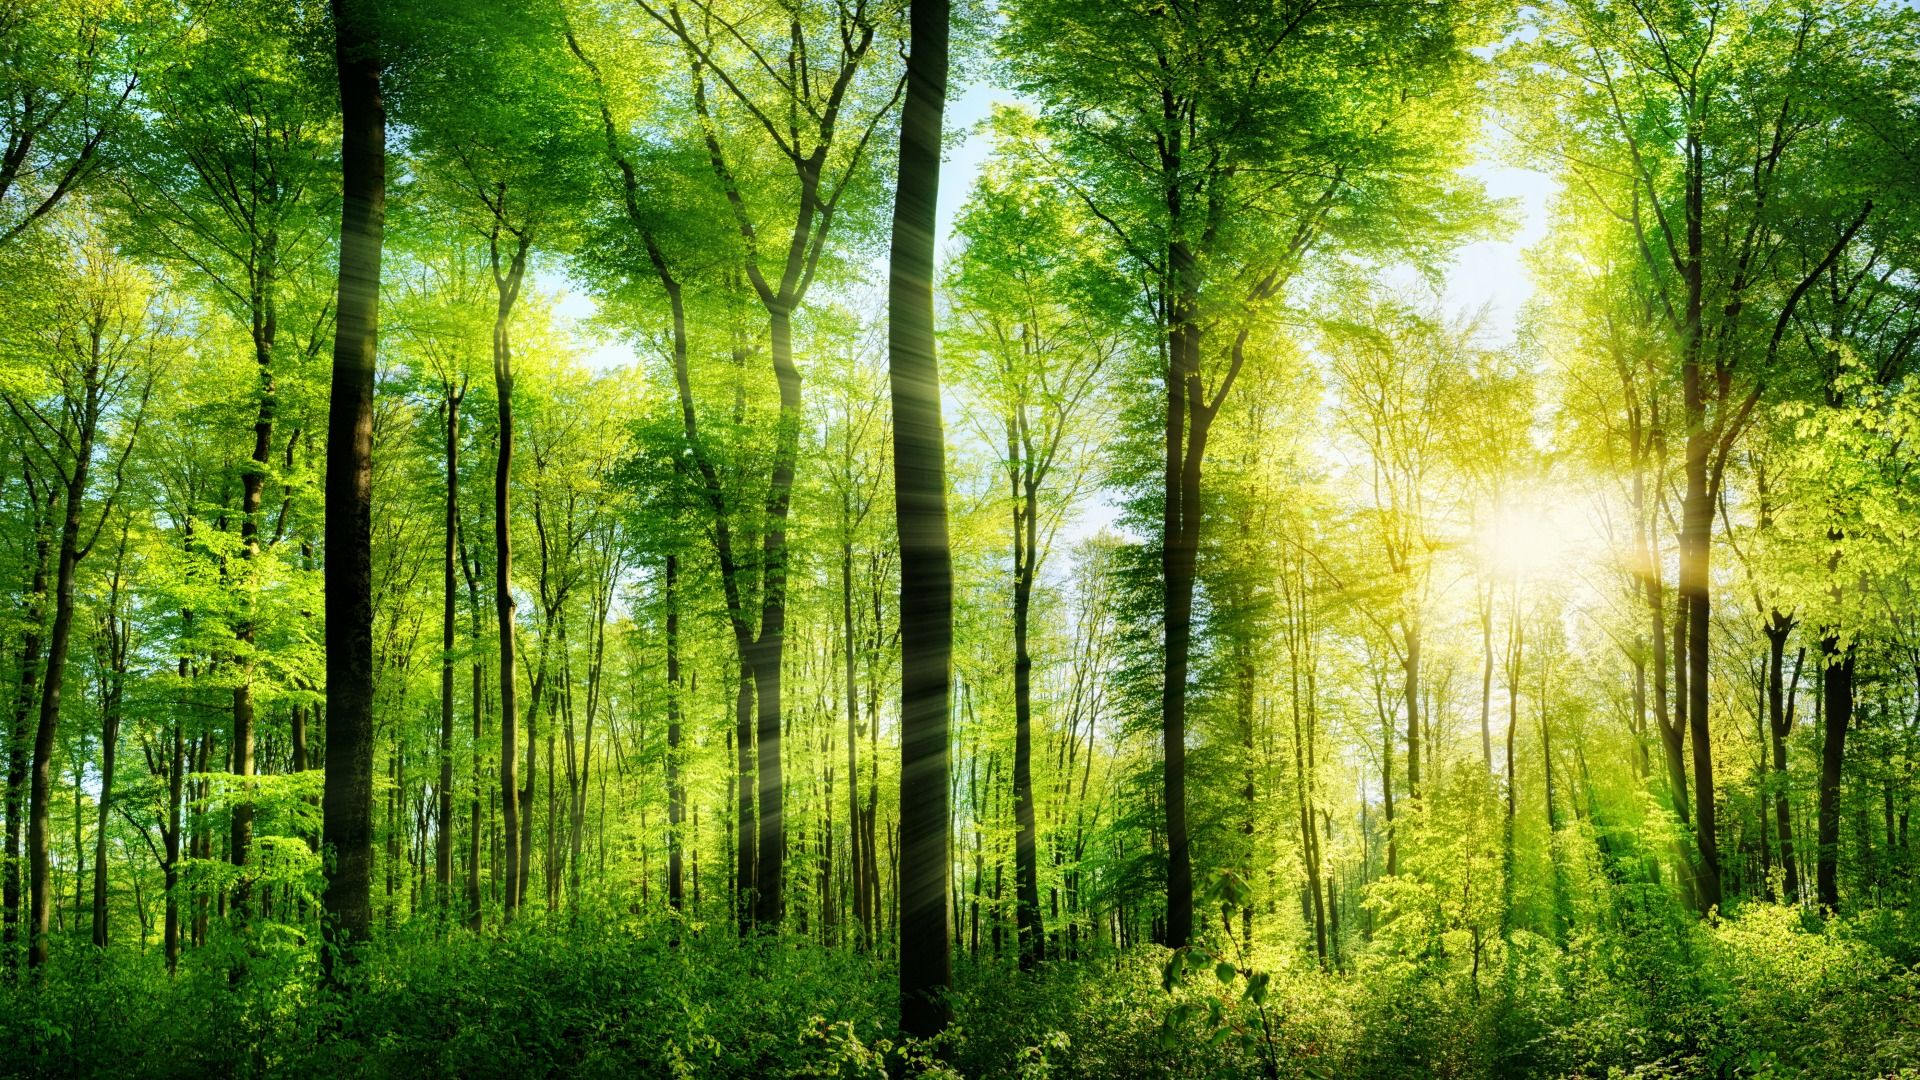 Trees Forest wallpaper image hd